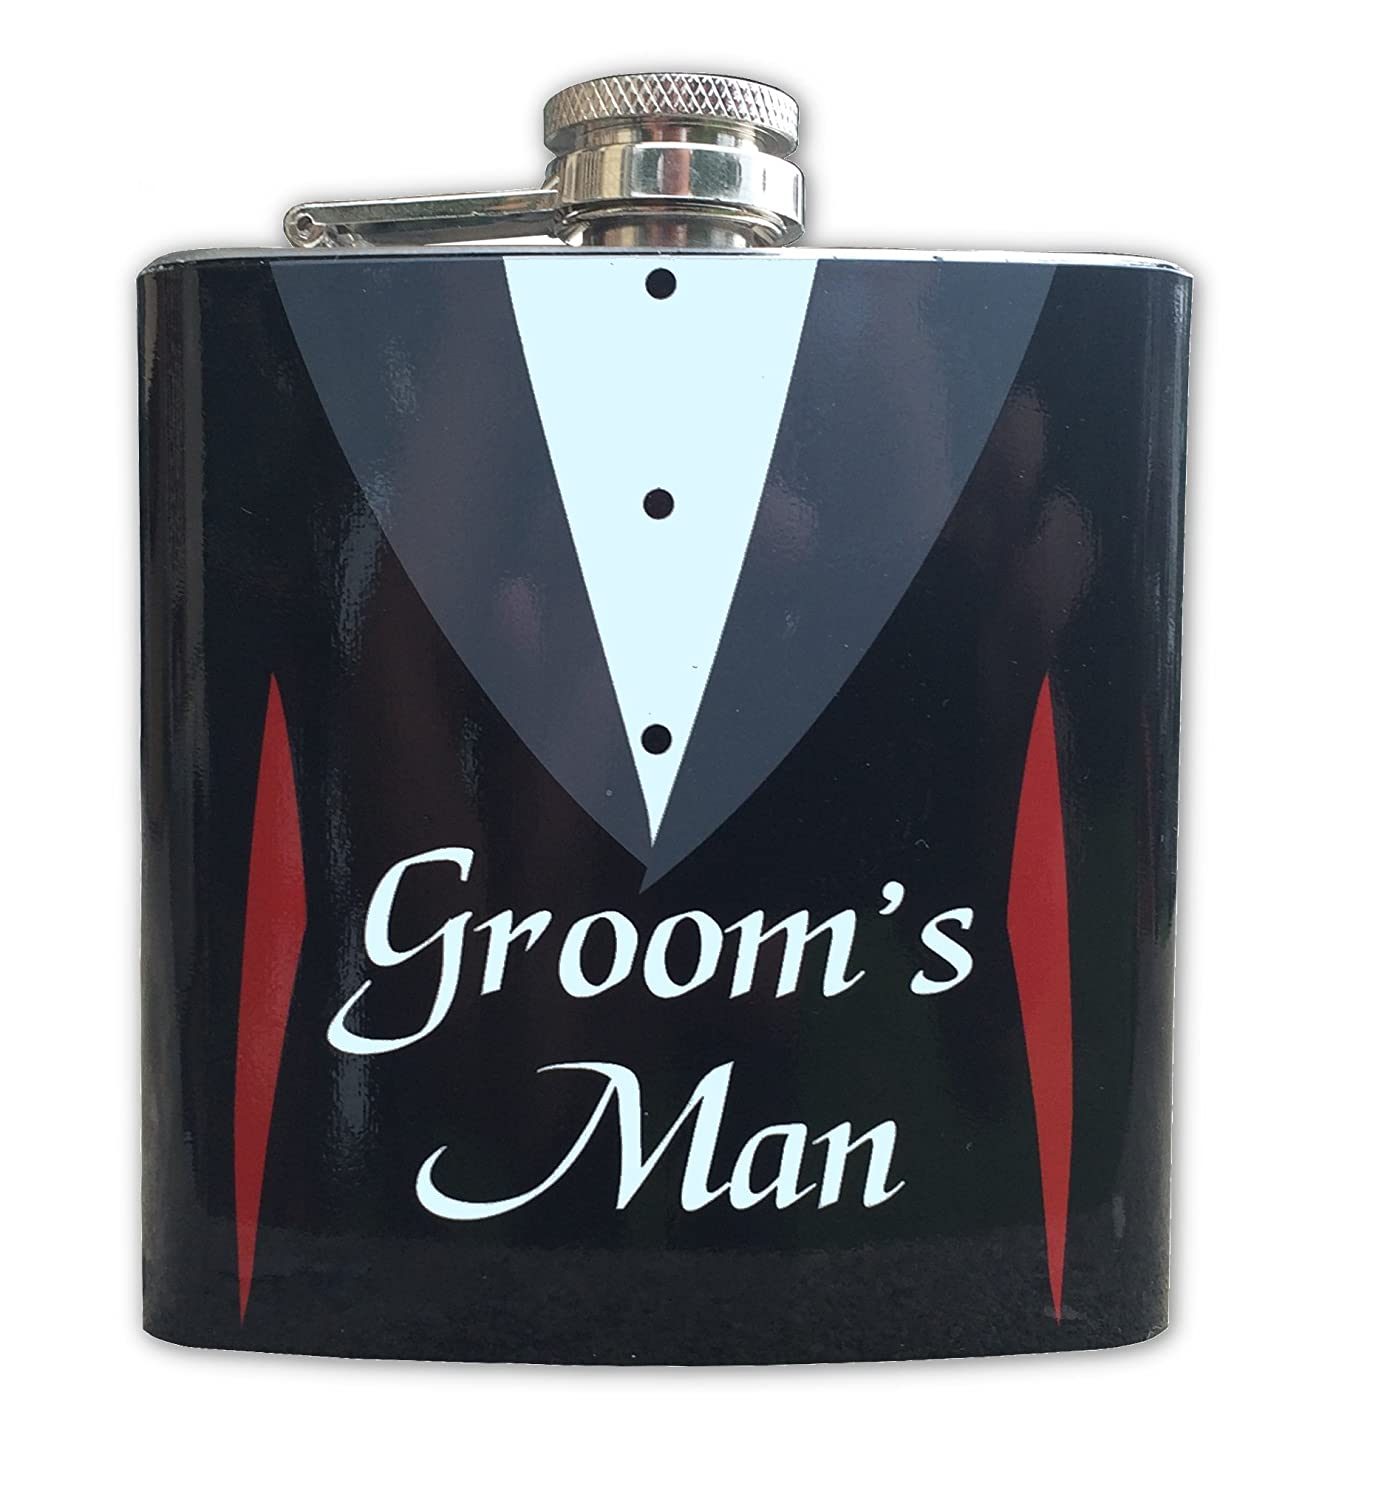 素晴らしい品質 Groom Flask B00ZE8TY8C and Groomsmenギフト6オンスヒップフラスコ Groom's Groom Man Flask B00ZE8TY8C, 戸塚区:81d49954 --- woxpedia.com